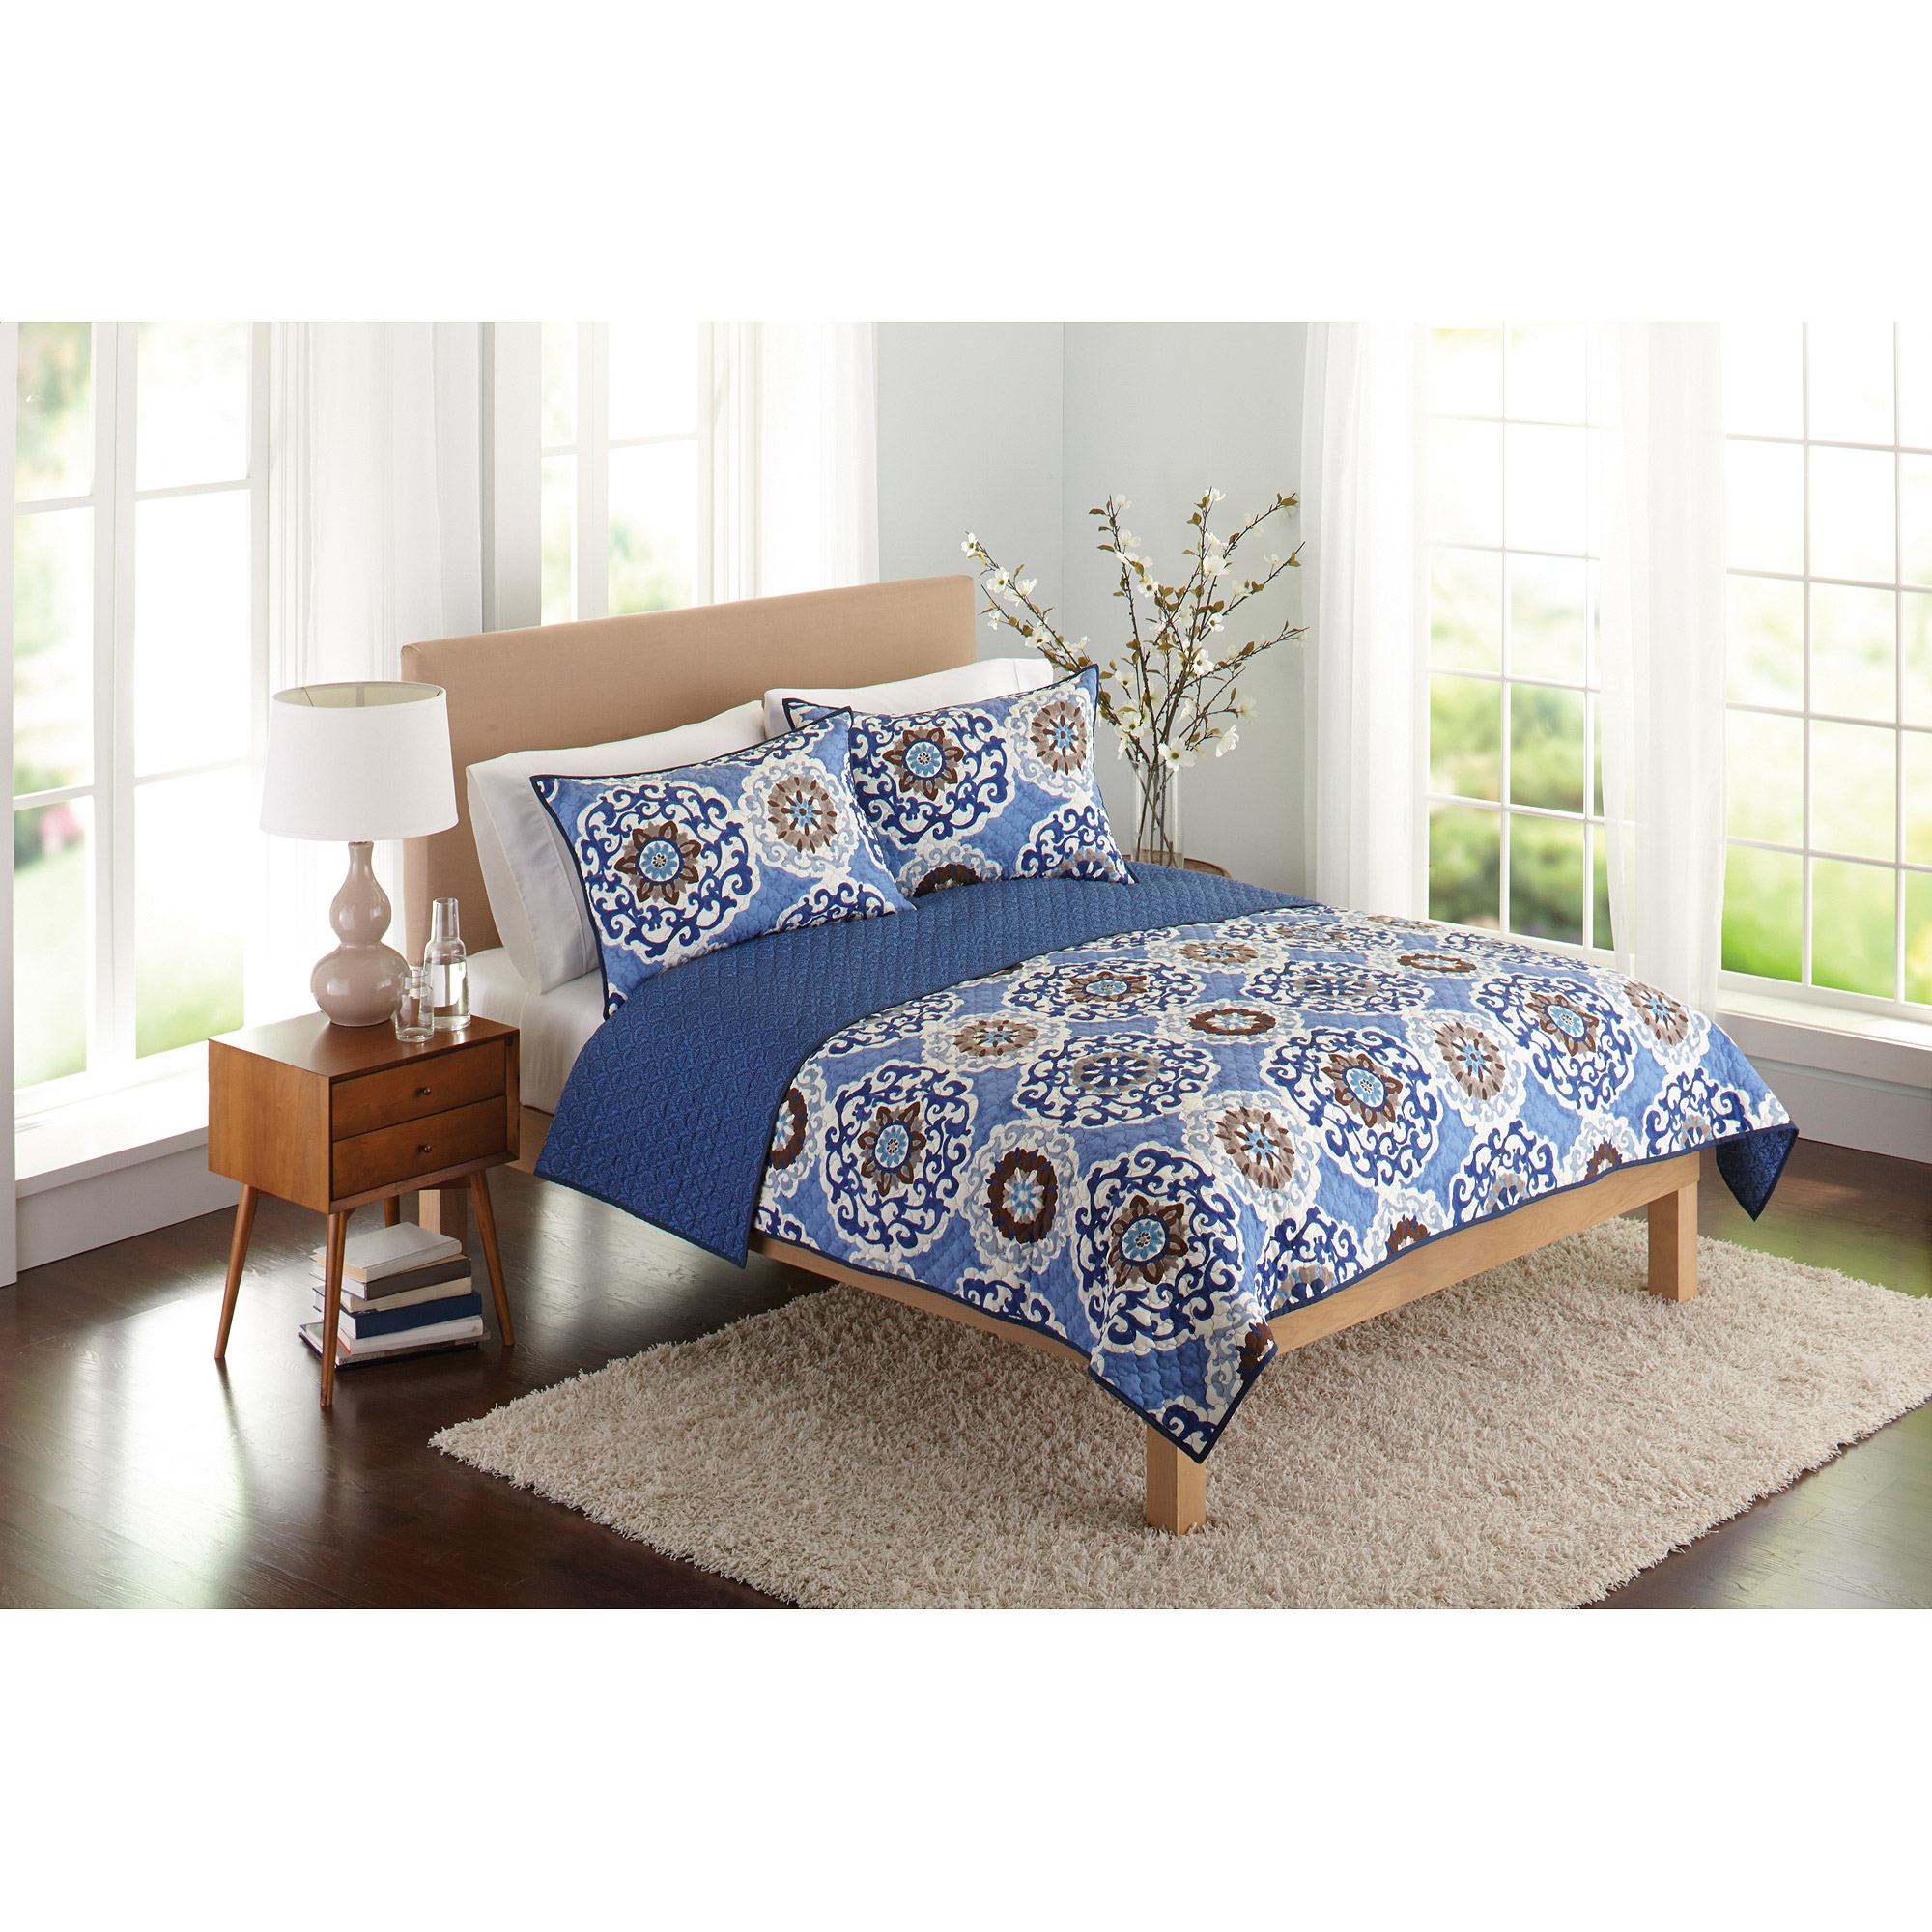 Better Homes and Gardens Suzani Bedding Quilt, Blue